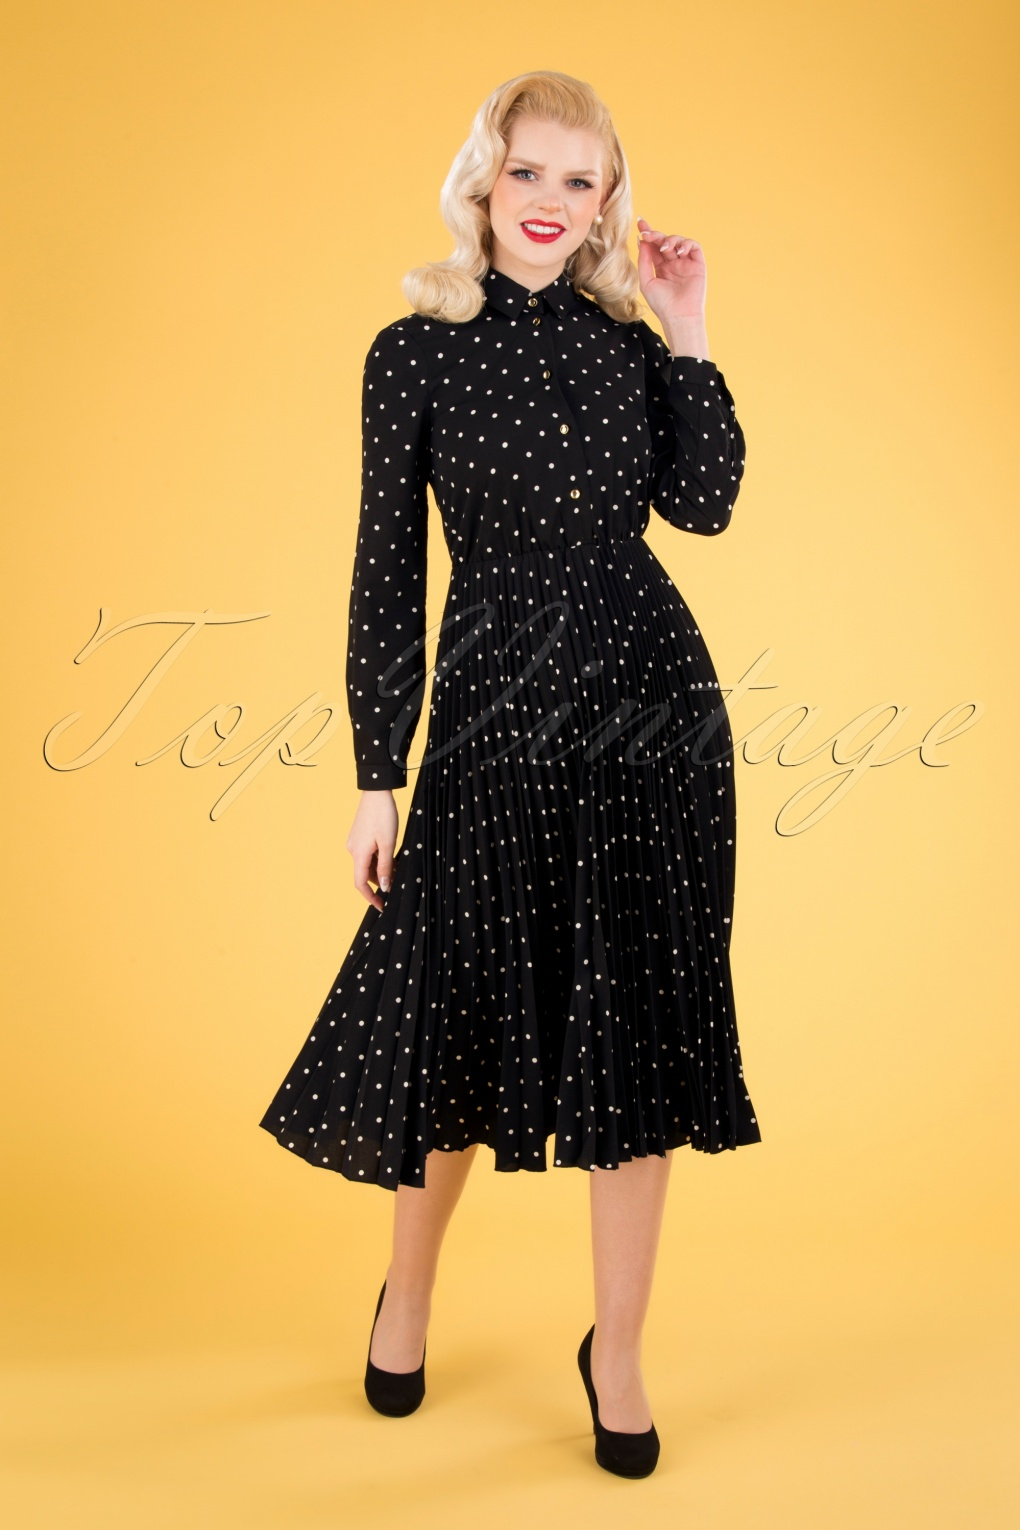 1950s Dresses, 50s Dresses | 1950s Style Dresses 50s Penelope Polkadot Pleated Shirt Dress in Black £95.06 AT vintagedancer.com